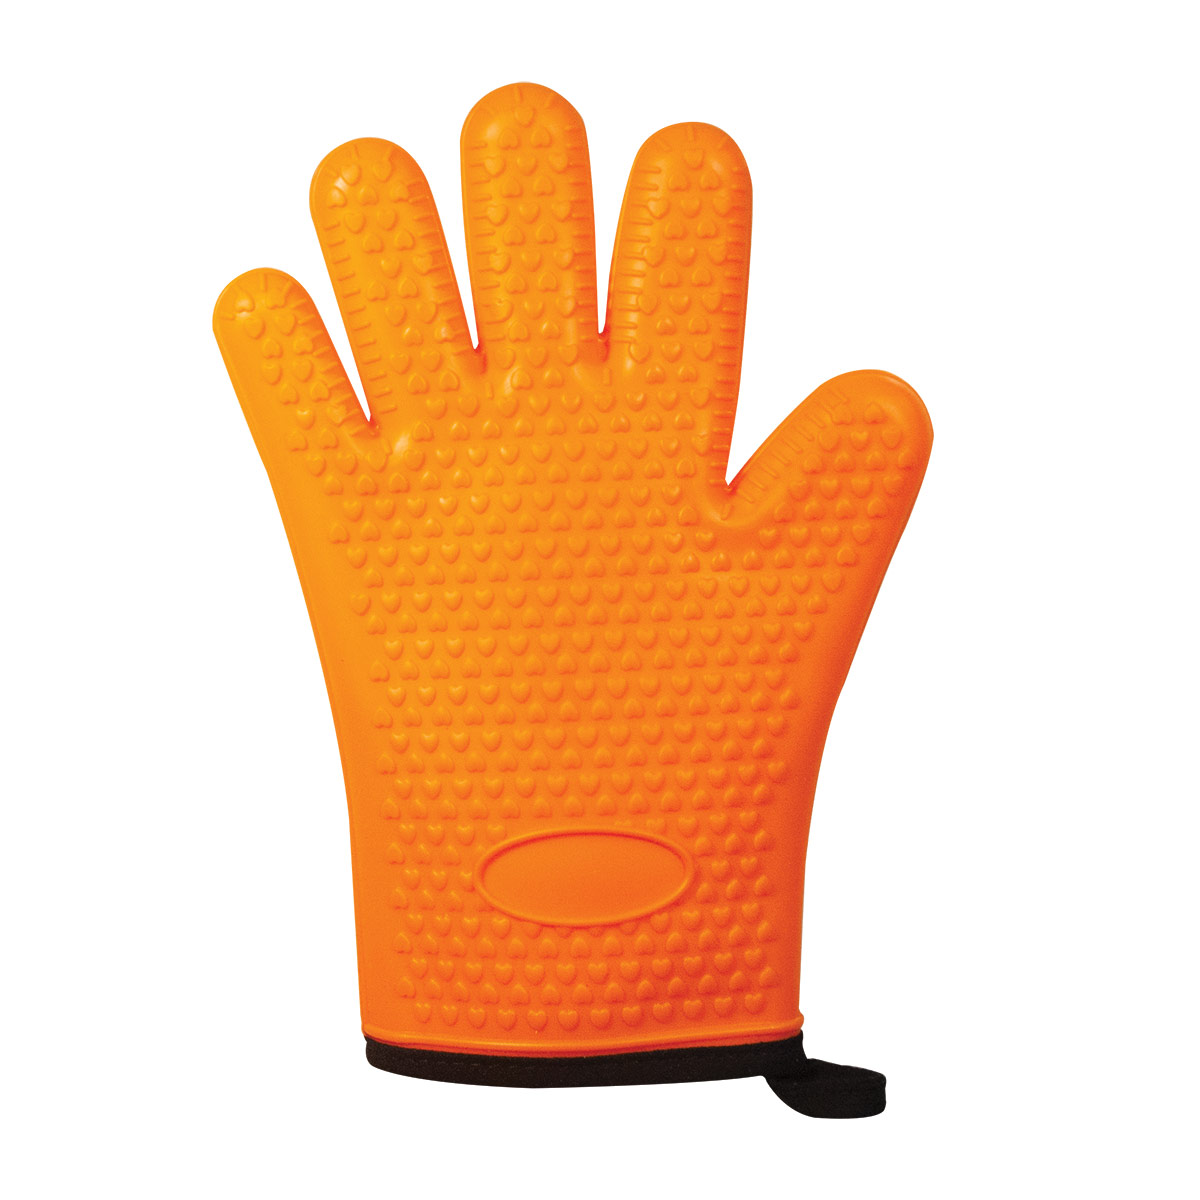 Heat Resistant Silicone Glove with Cloth Interior